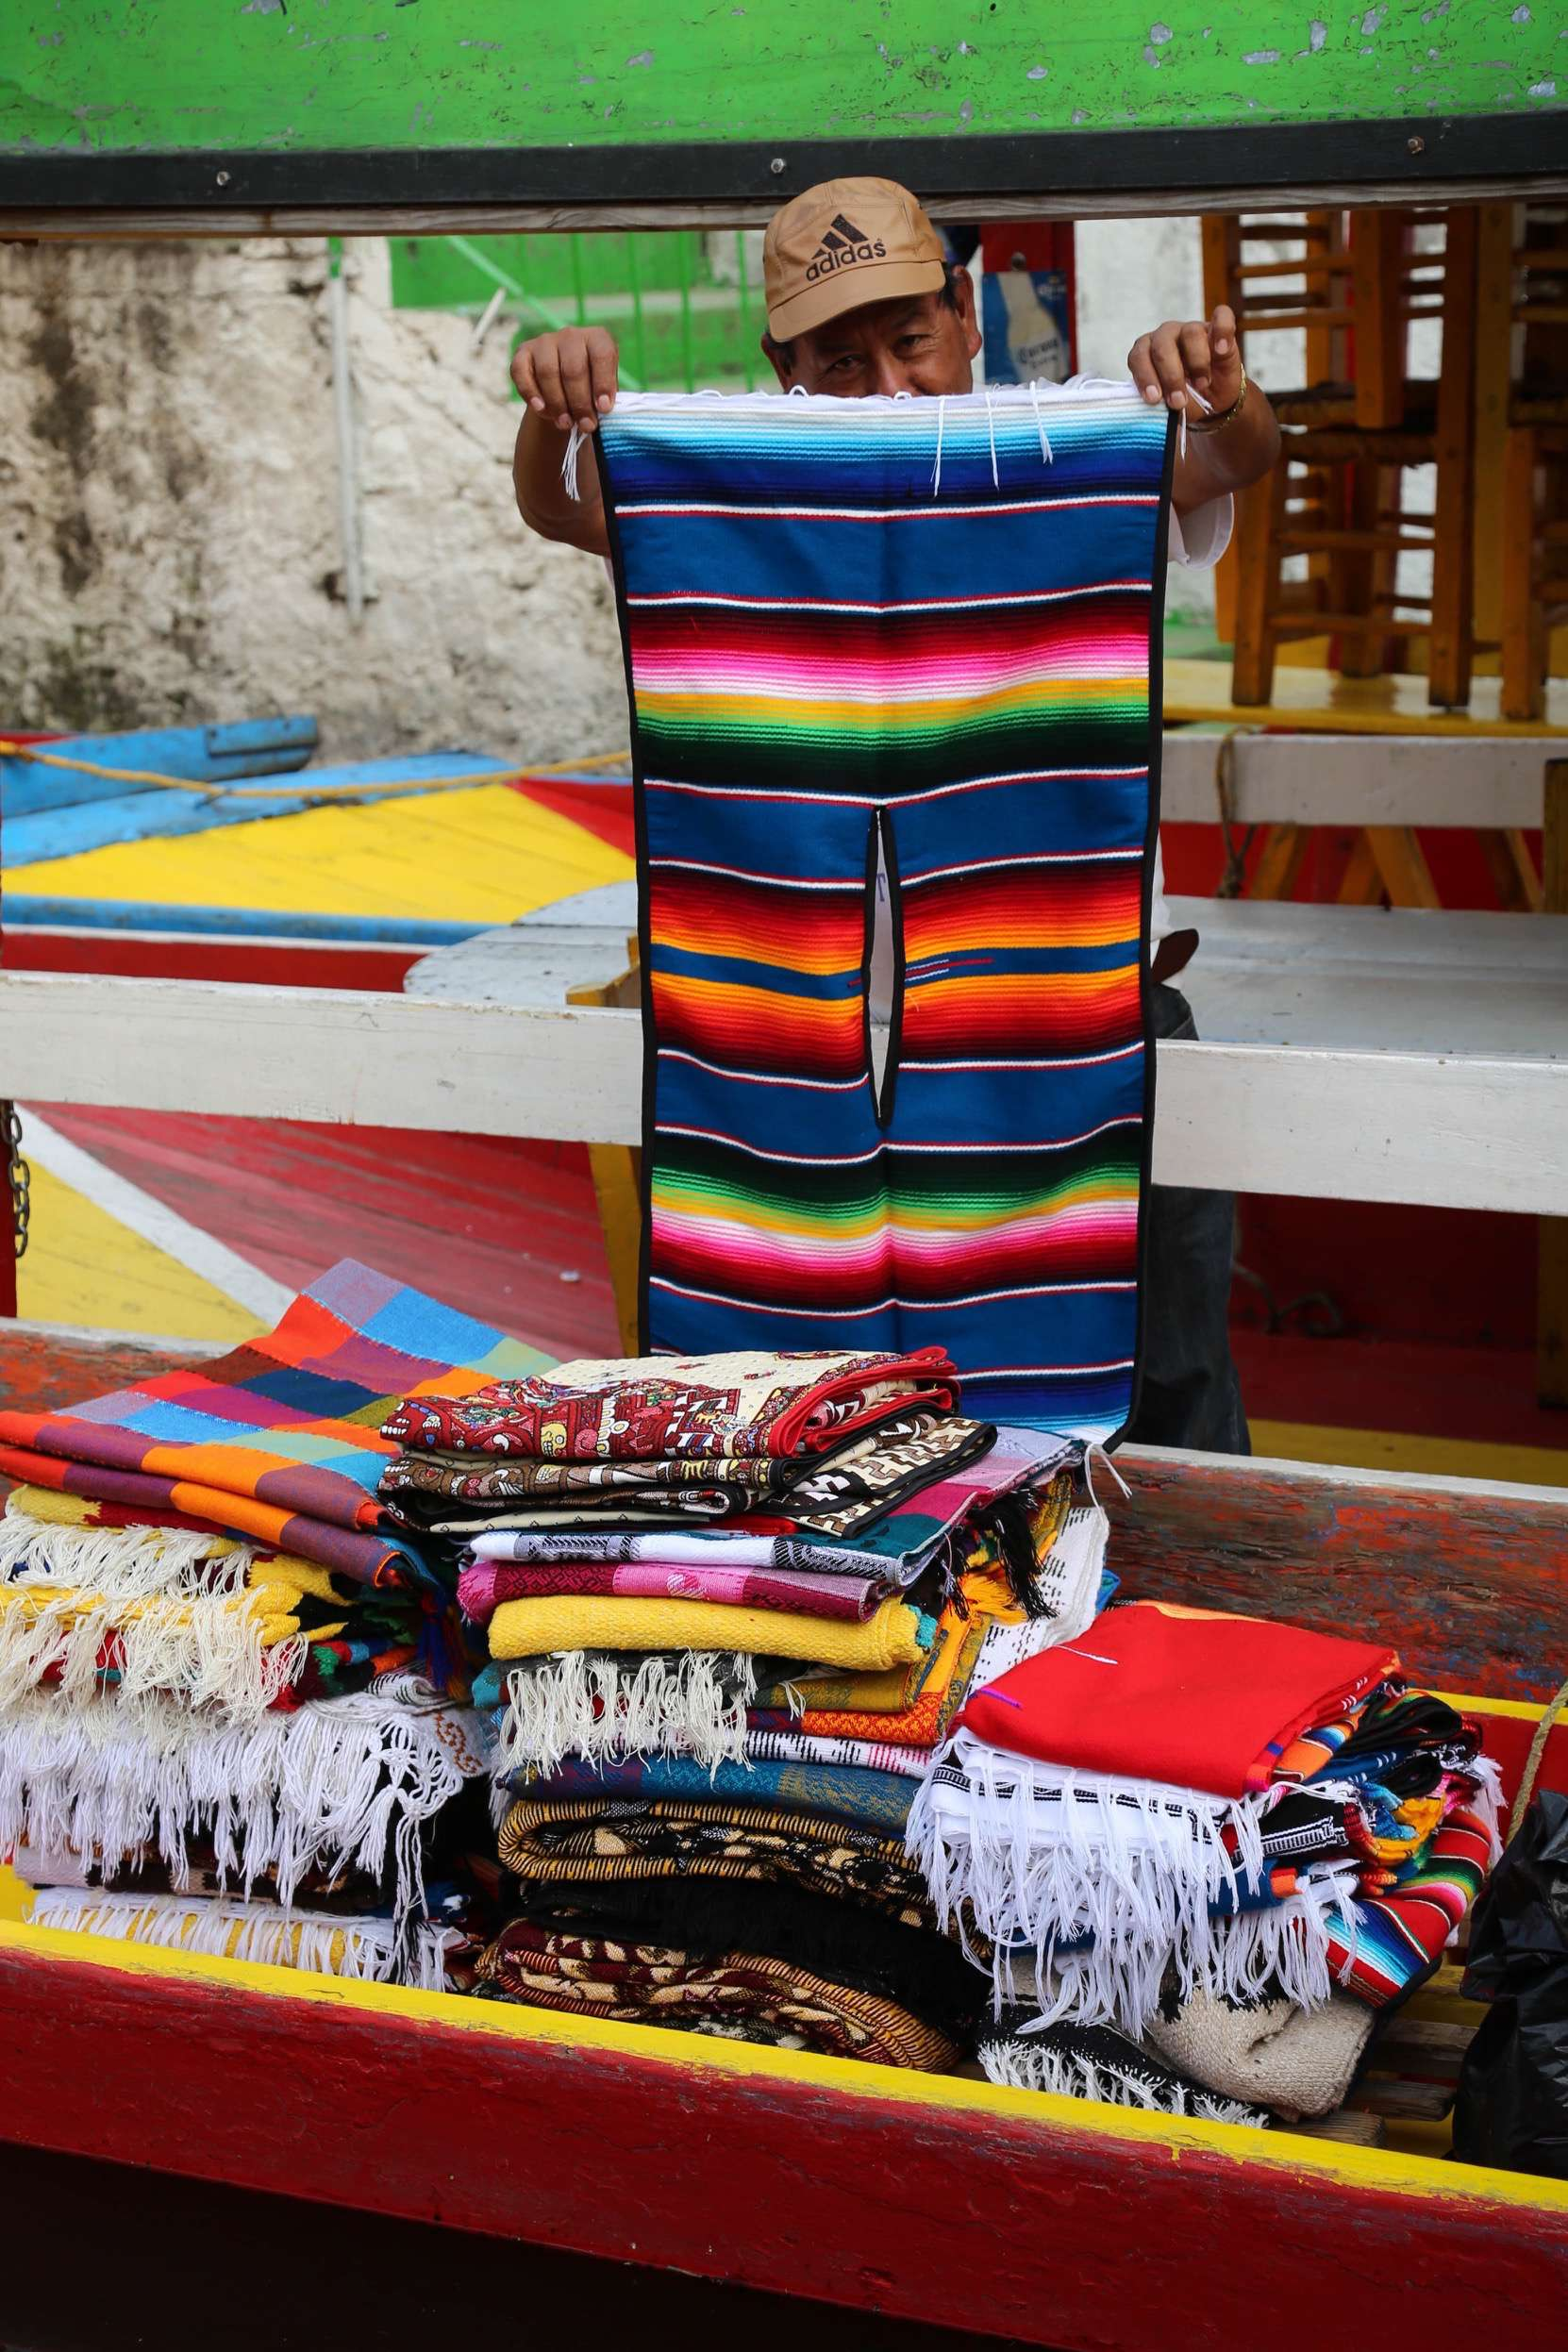 If you feel a chill in the air, you can always buy a serape.